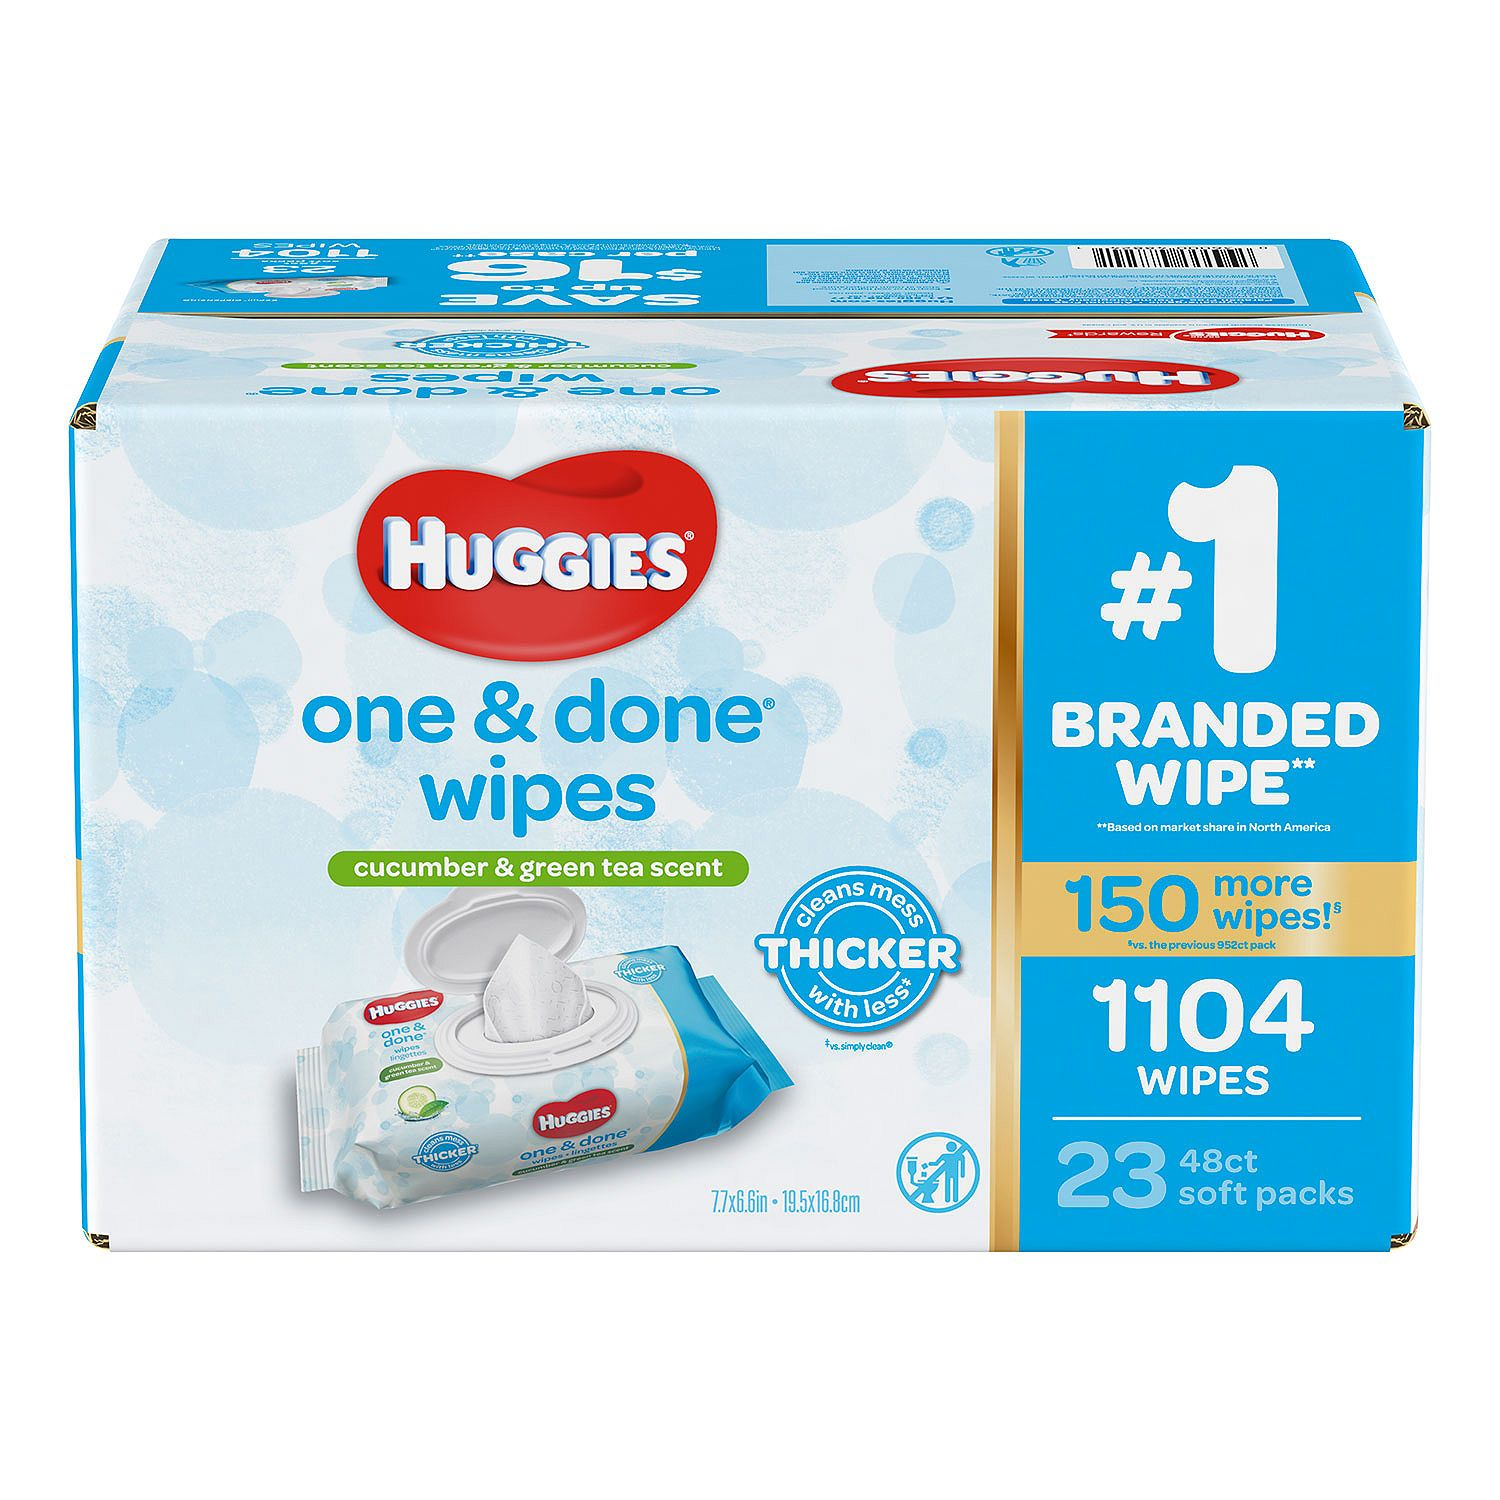 Huggies One & Done Baby Wipes, Cucumber & Green Tea Scented (1,104 ct.)